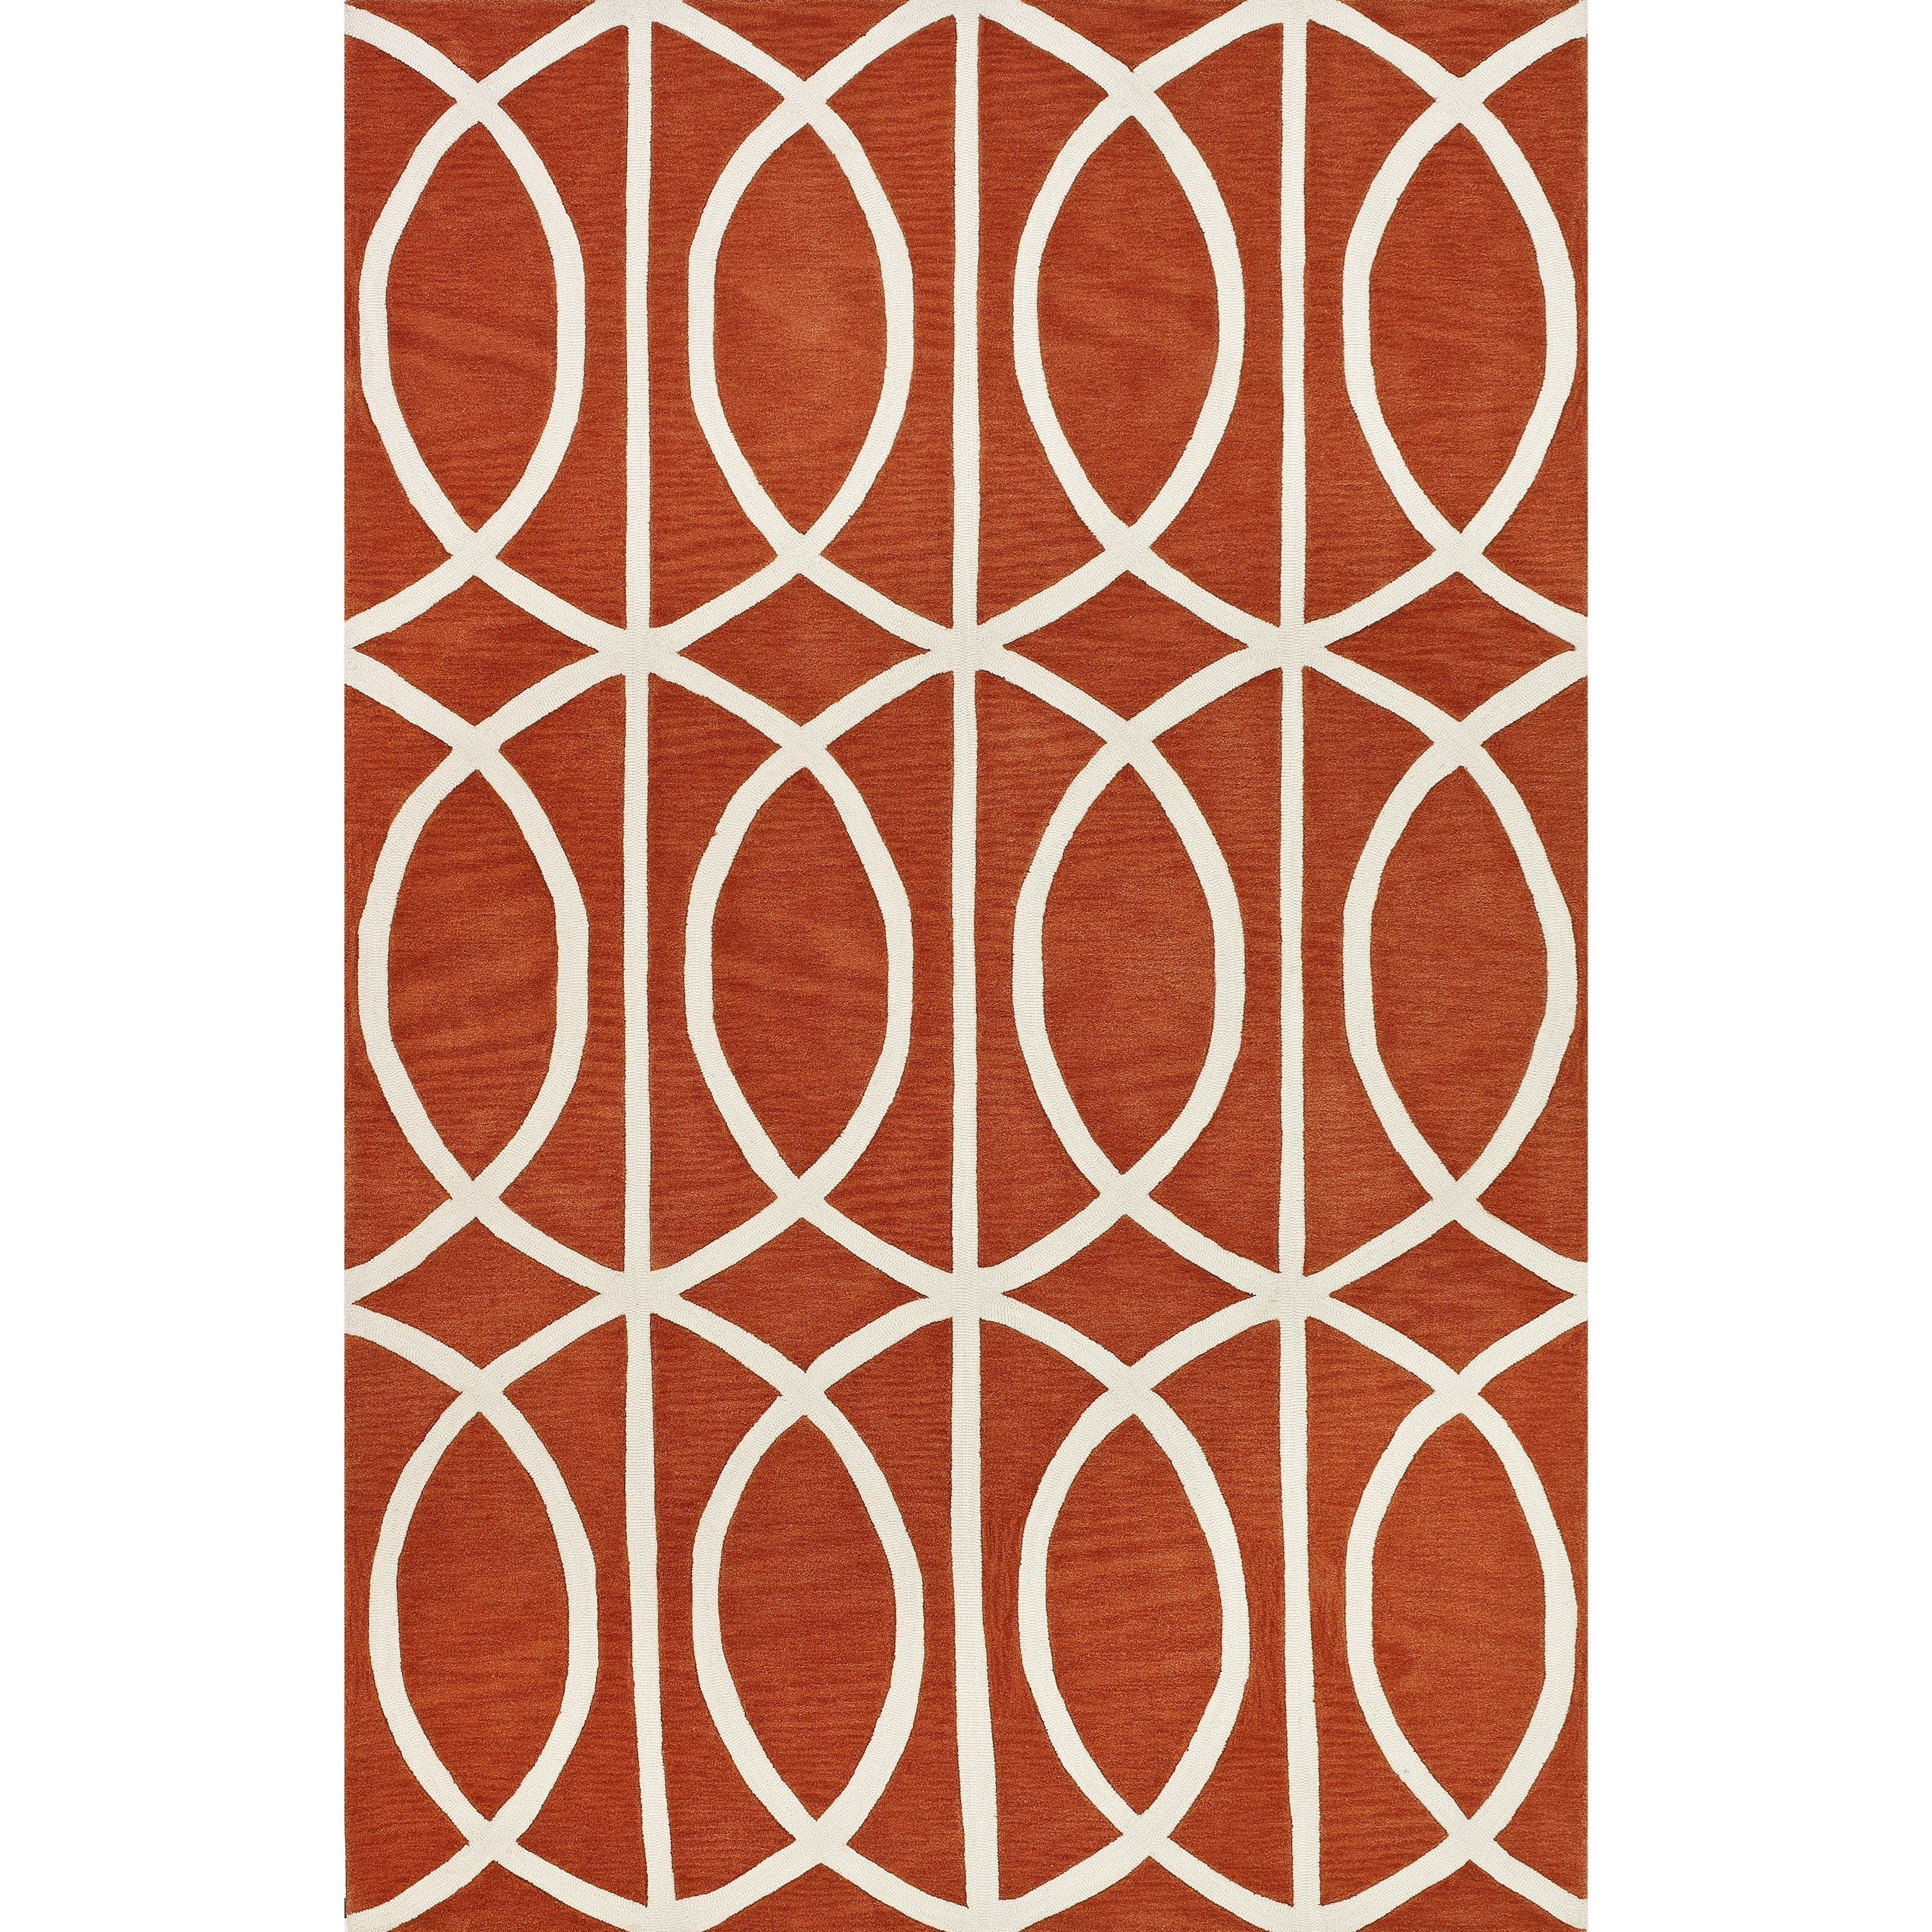 "Dalyn Infinity Pumpkin 5'X7'6"" Rug - Item Number: IF5PK5X8"